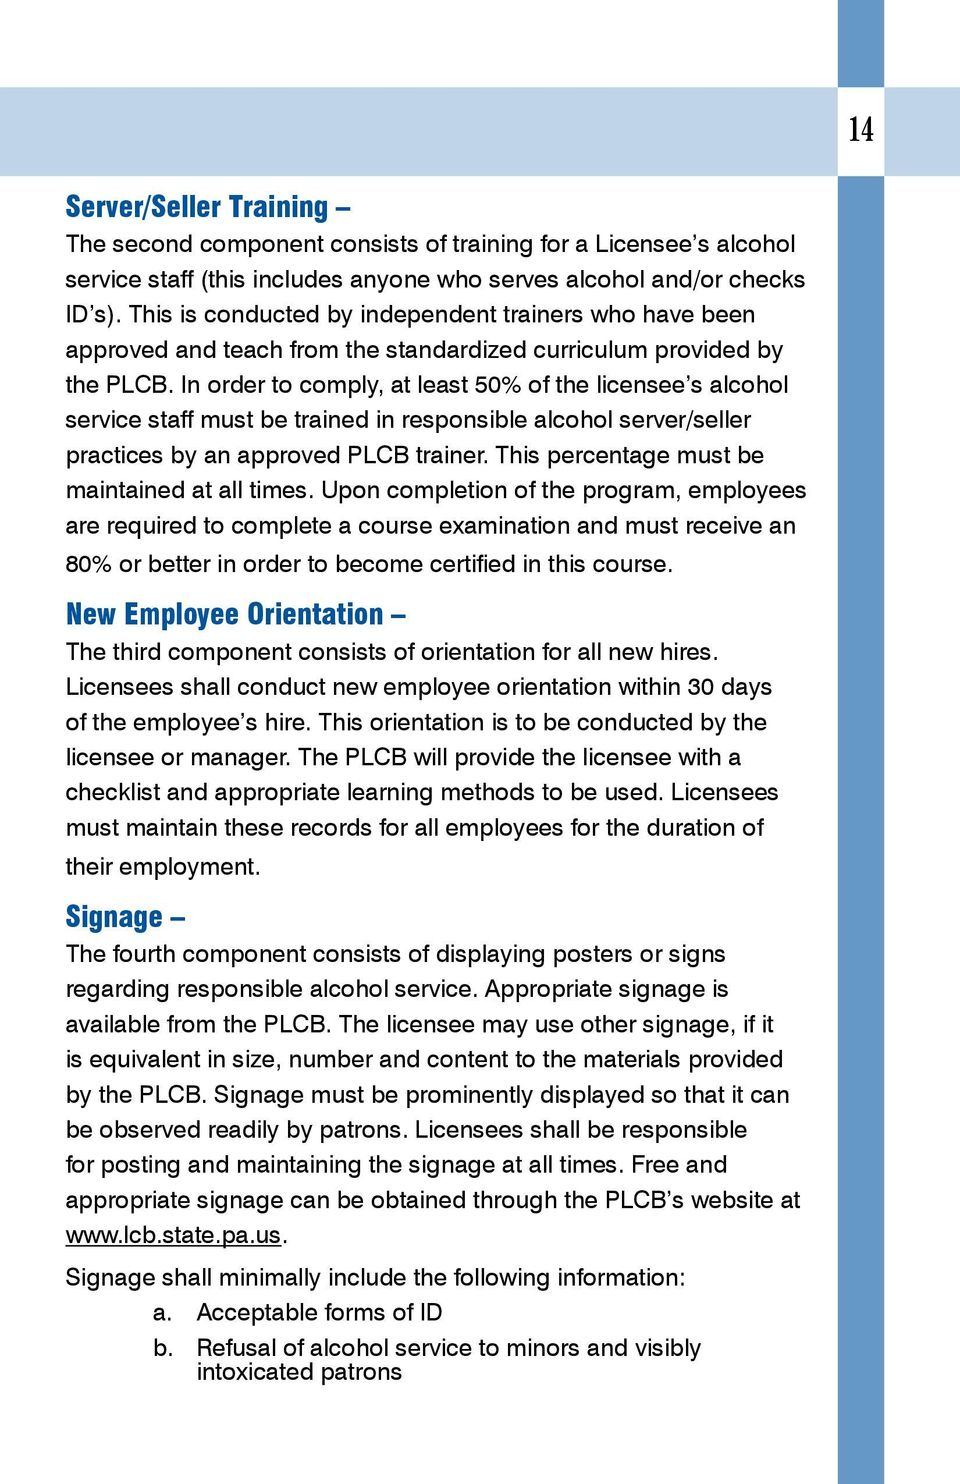 In order to comply, at least 50% of the licensee s alcohol service staff must be trained in responsible alcohol server/seller practices by an approved PLCB trainer.